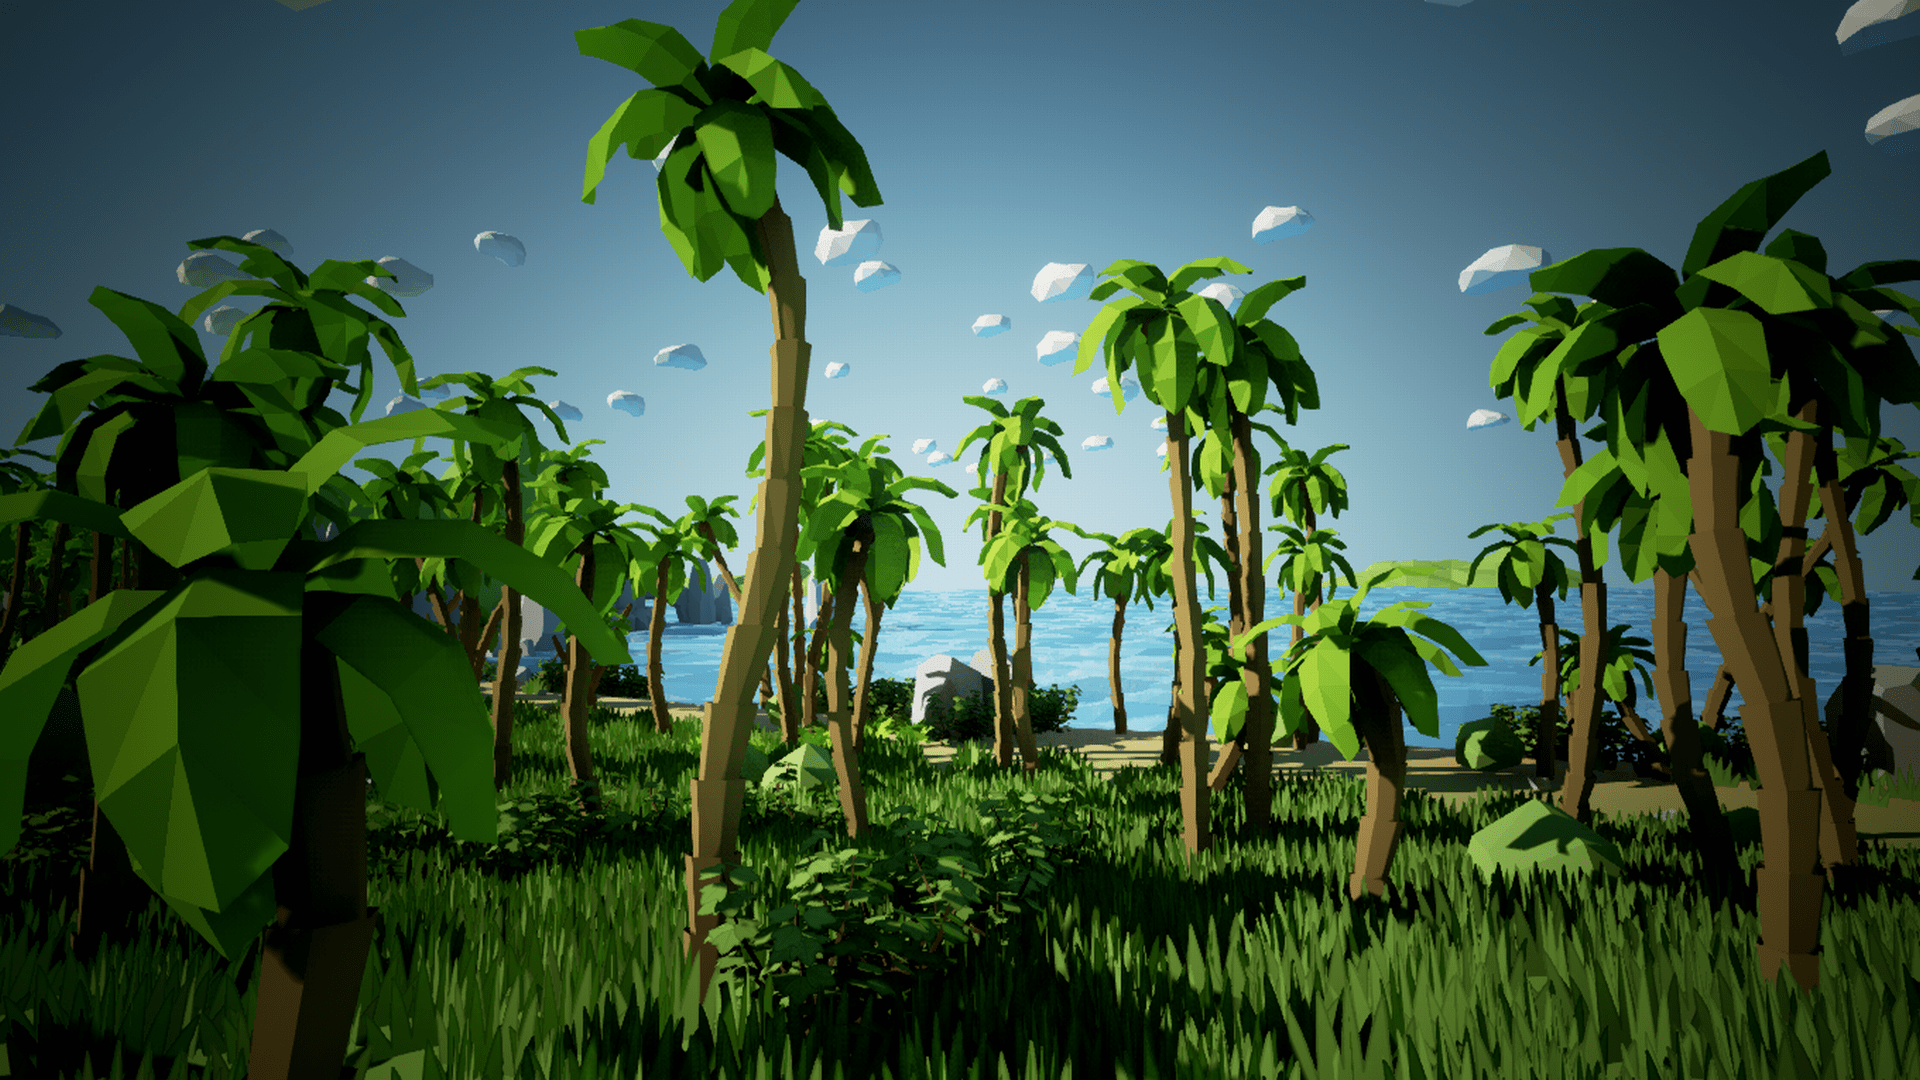 Olbert's Low Poly: Coast by Whitman And Olbert in